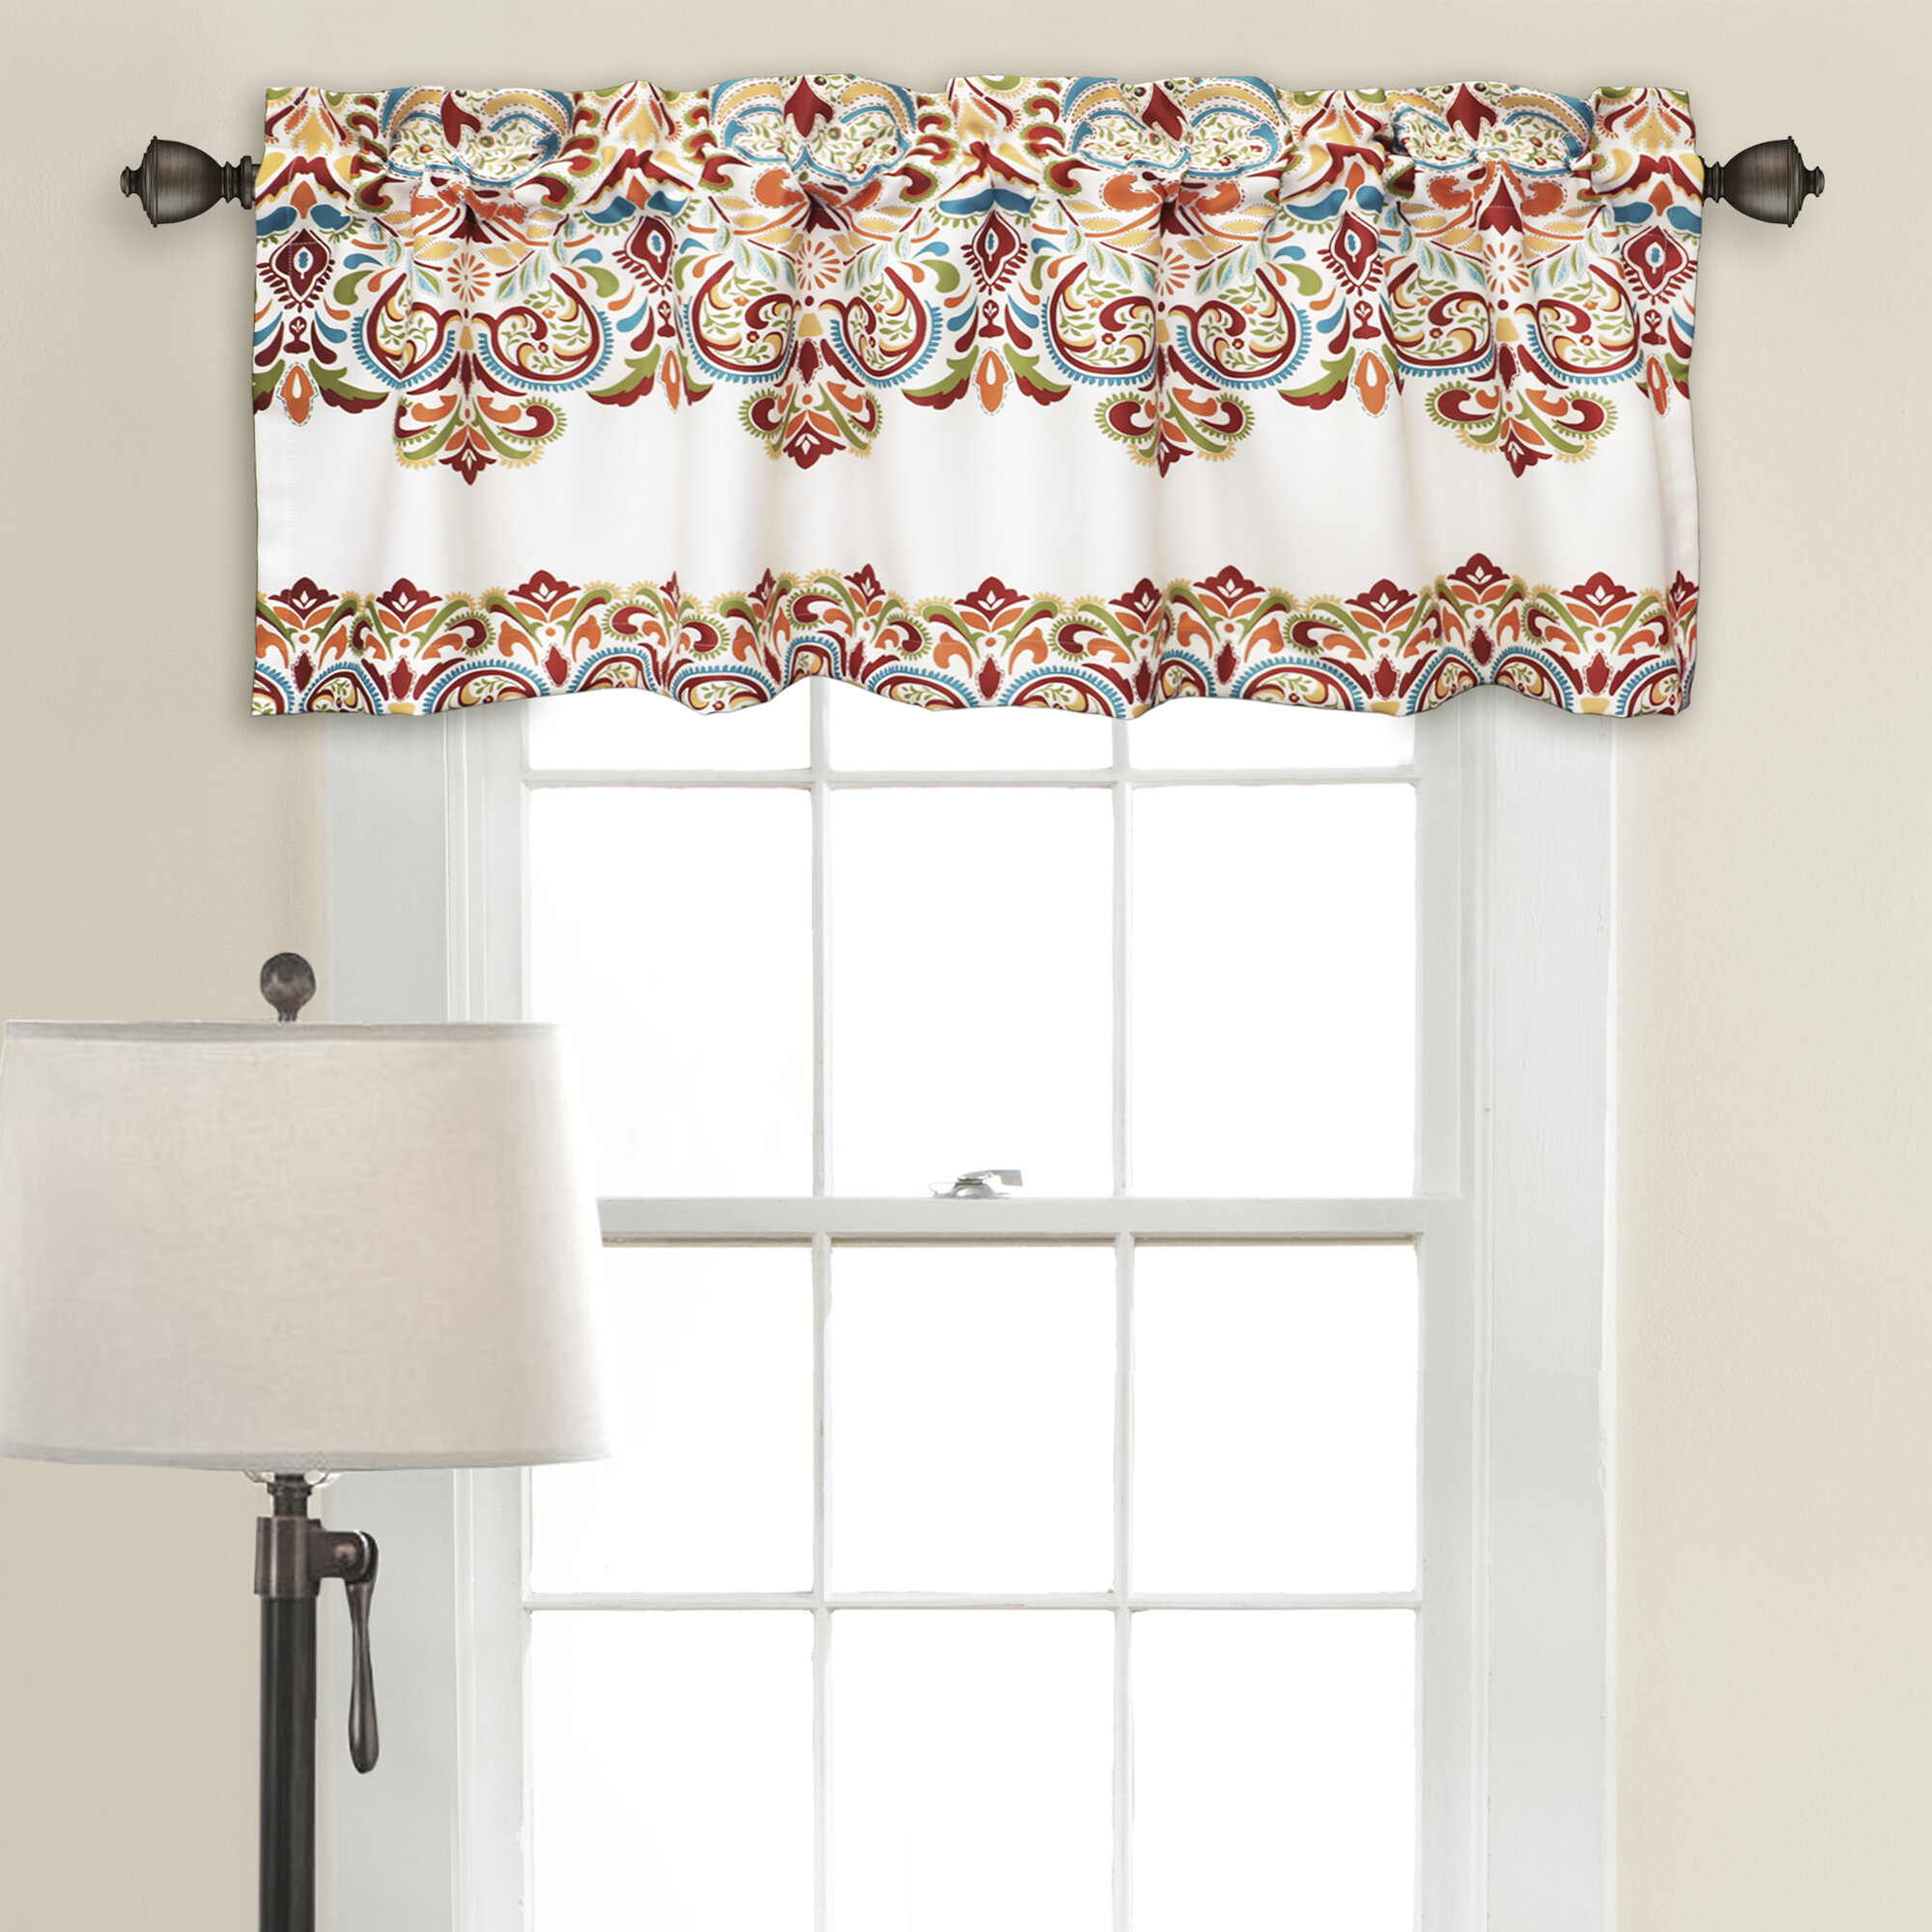 ideas windows swags swag curtains bamboo custom kitchen valance valances window for regarding waverly